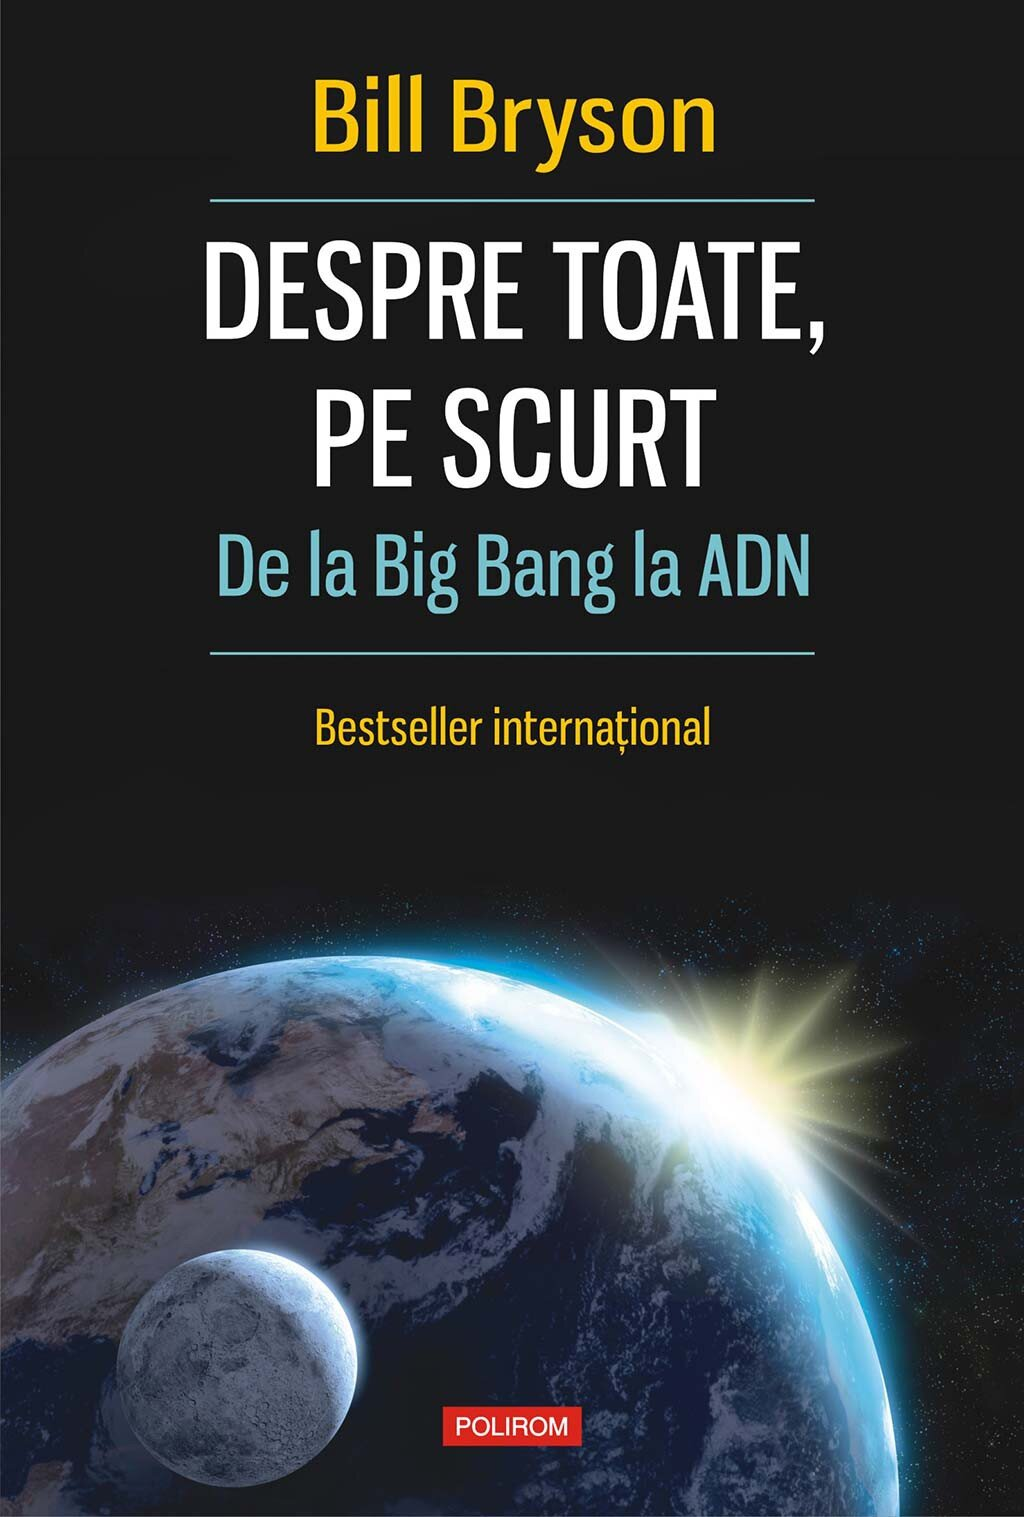 Despre toate, pe scurt. De la Big Bang la ADN PDF (Download eBook)